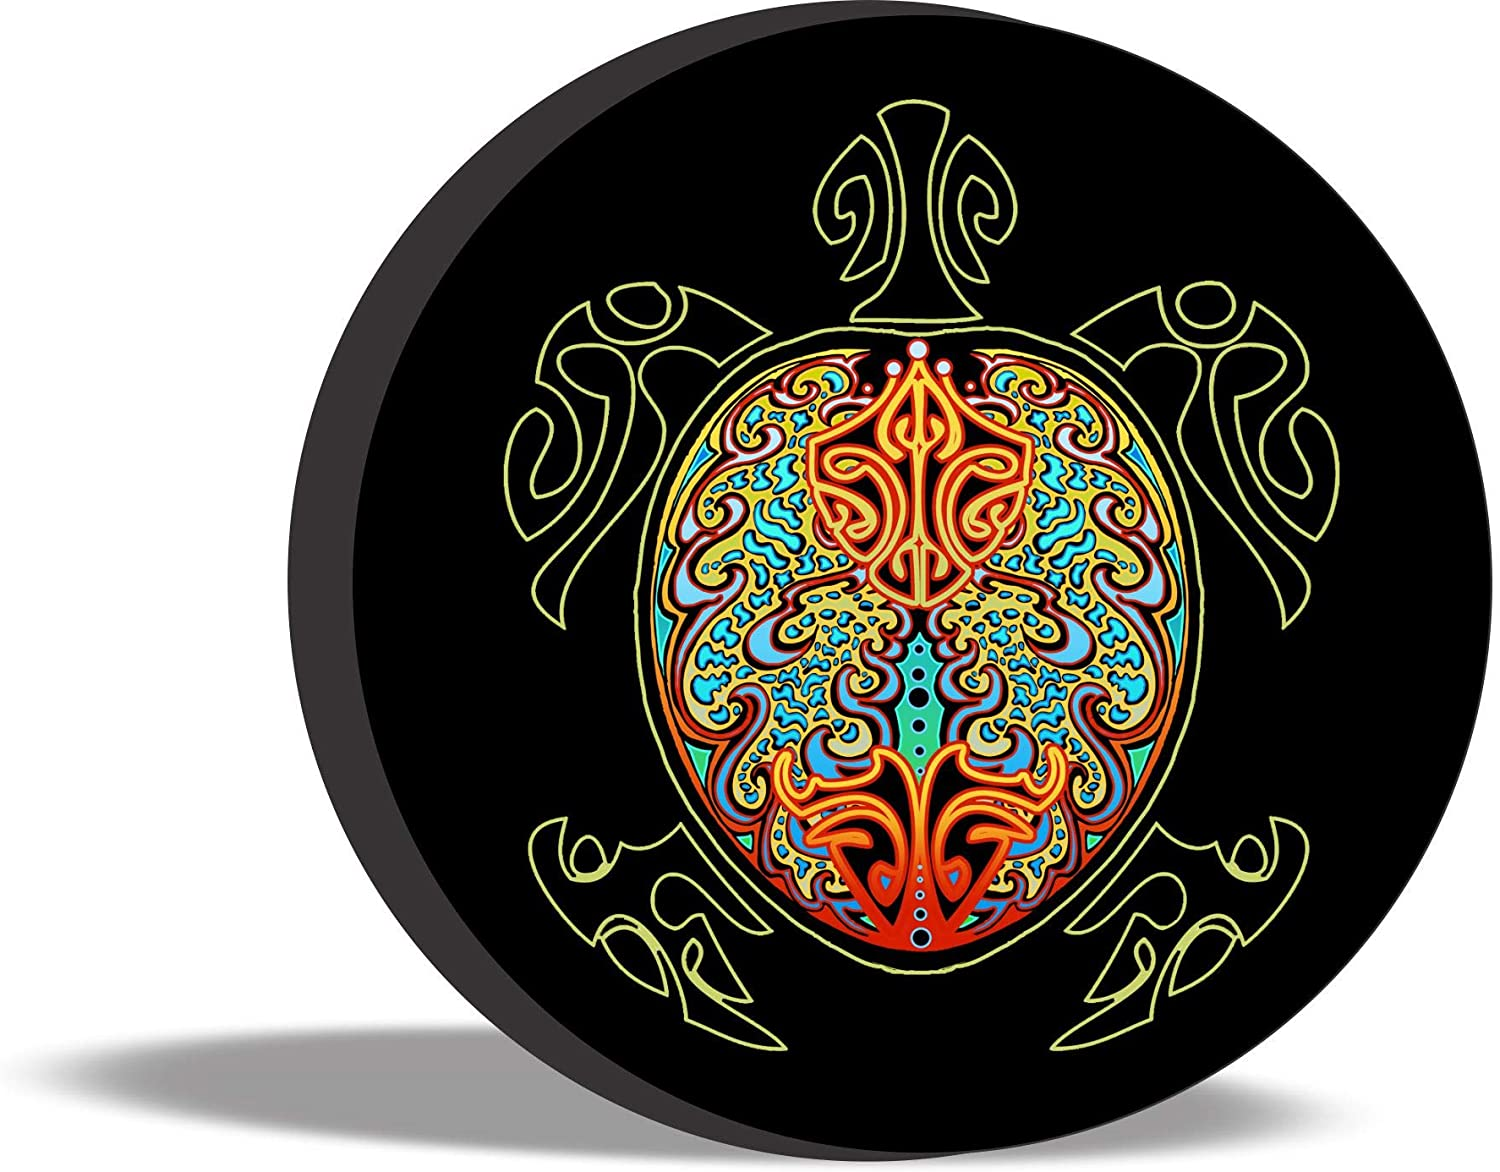 TIRE COVER CENTRAL Turtle Peace Tribal Rasta Earth Sea Spare Tire Cover (Select tire Size/Back up Camera Option in MENU) Custom Sized to Any Make/modelfor 255/75R17